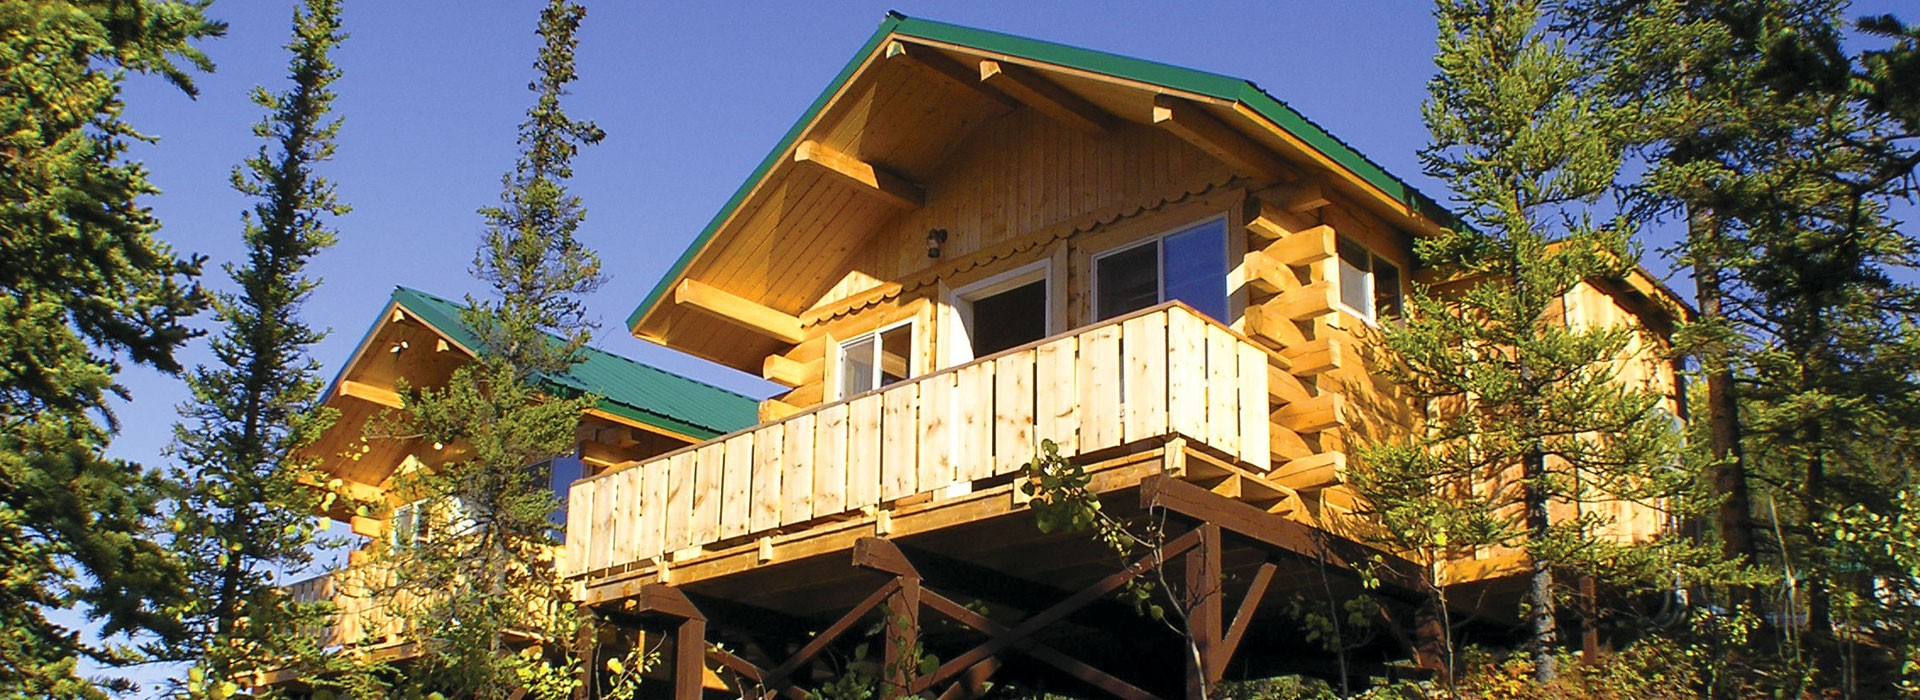 Denali National Park Resort U0026 Lodging In Alaska | Denali Grizzly ...